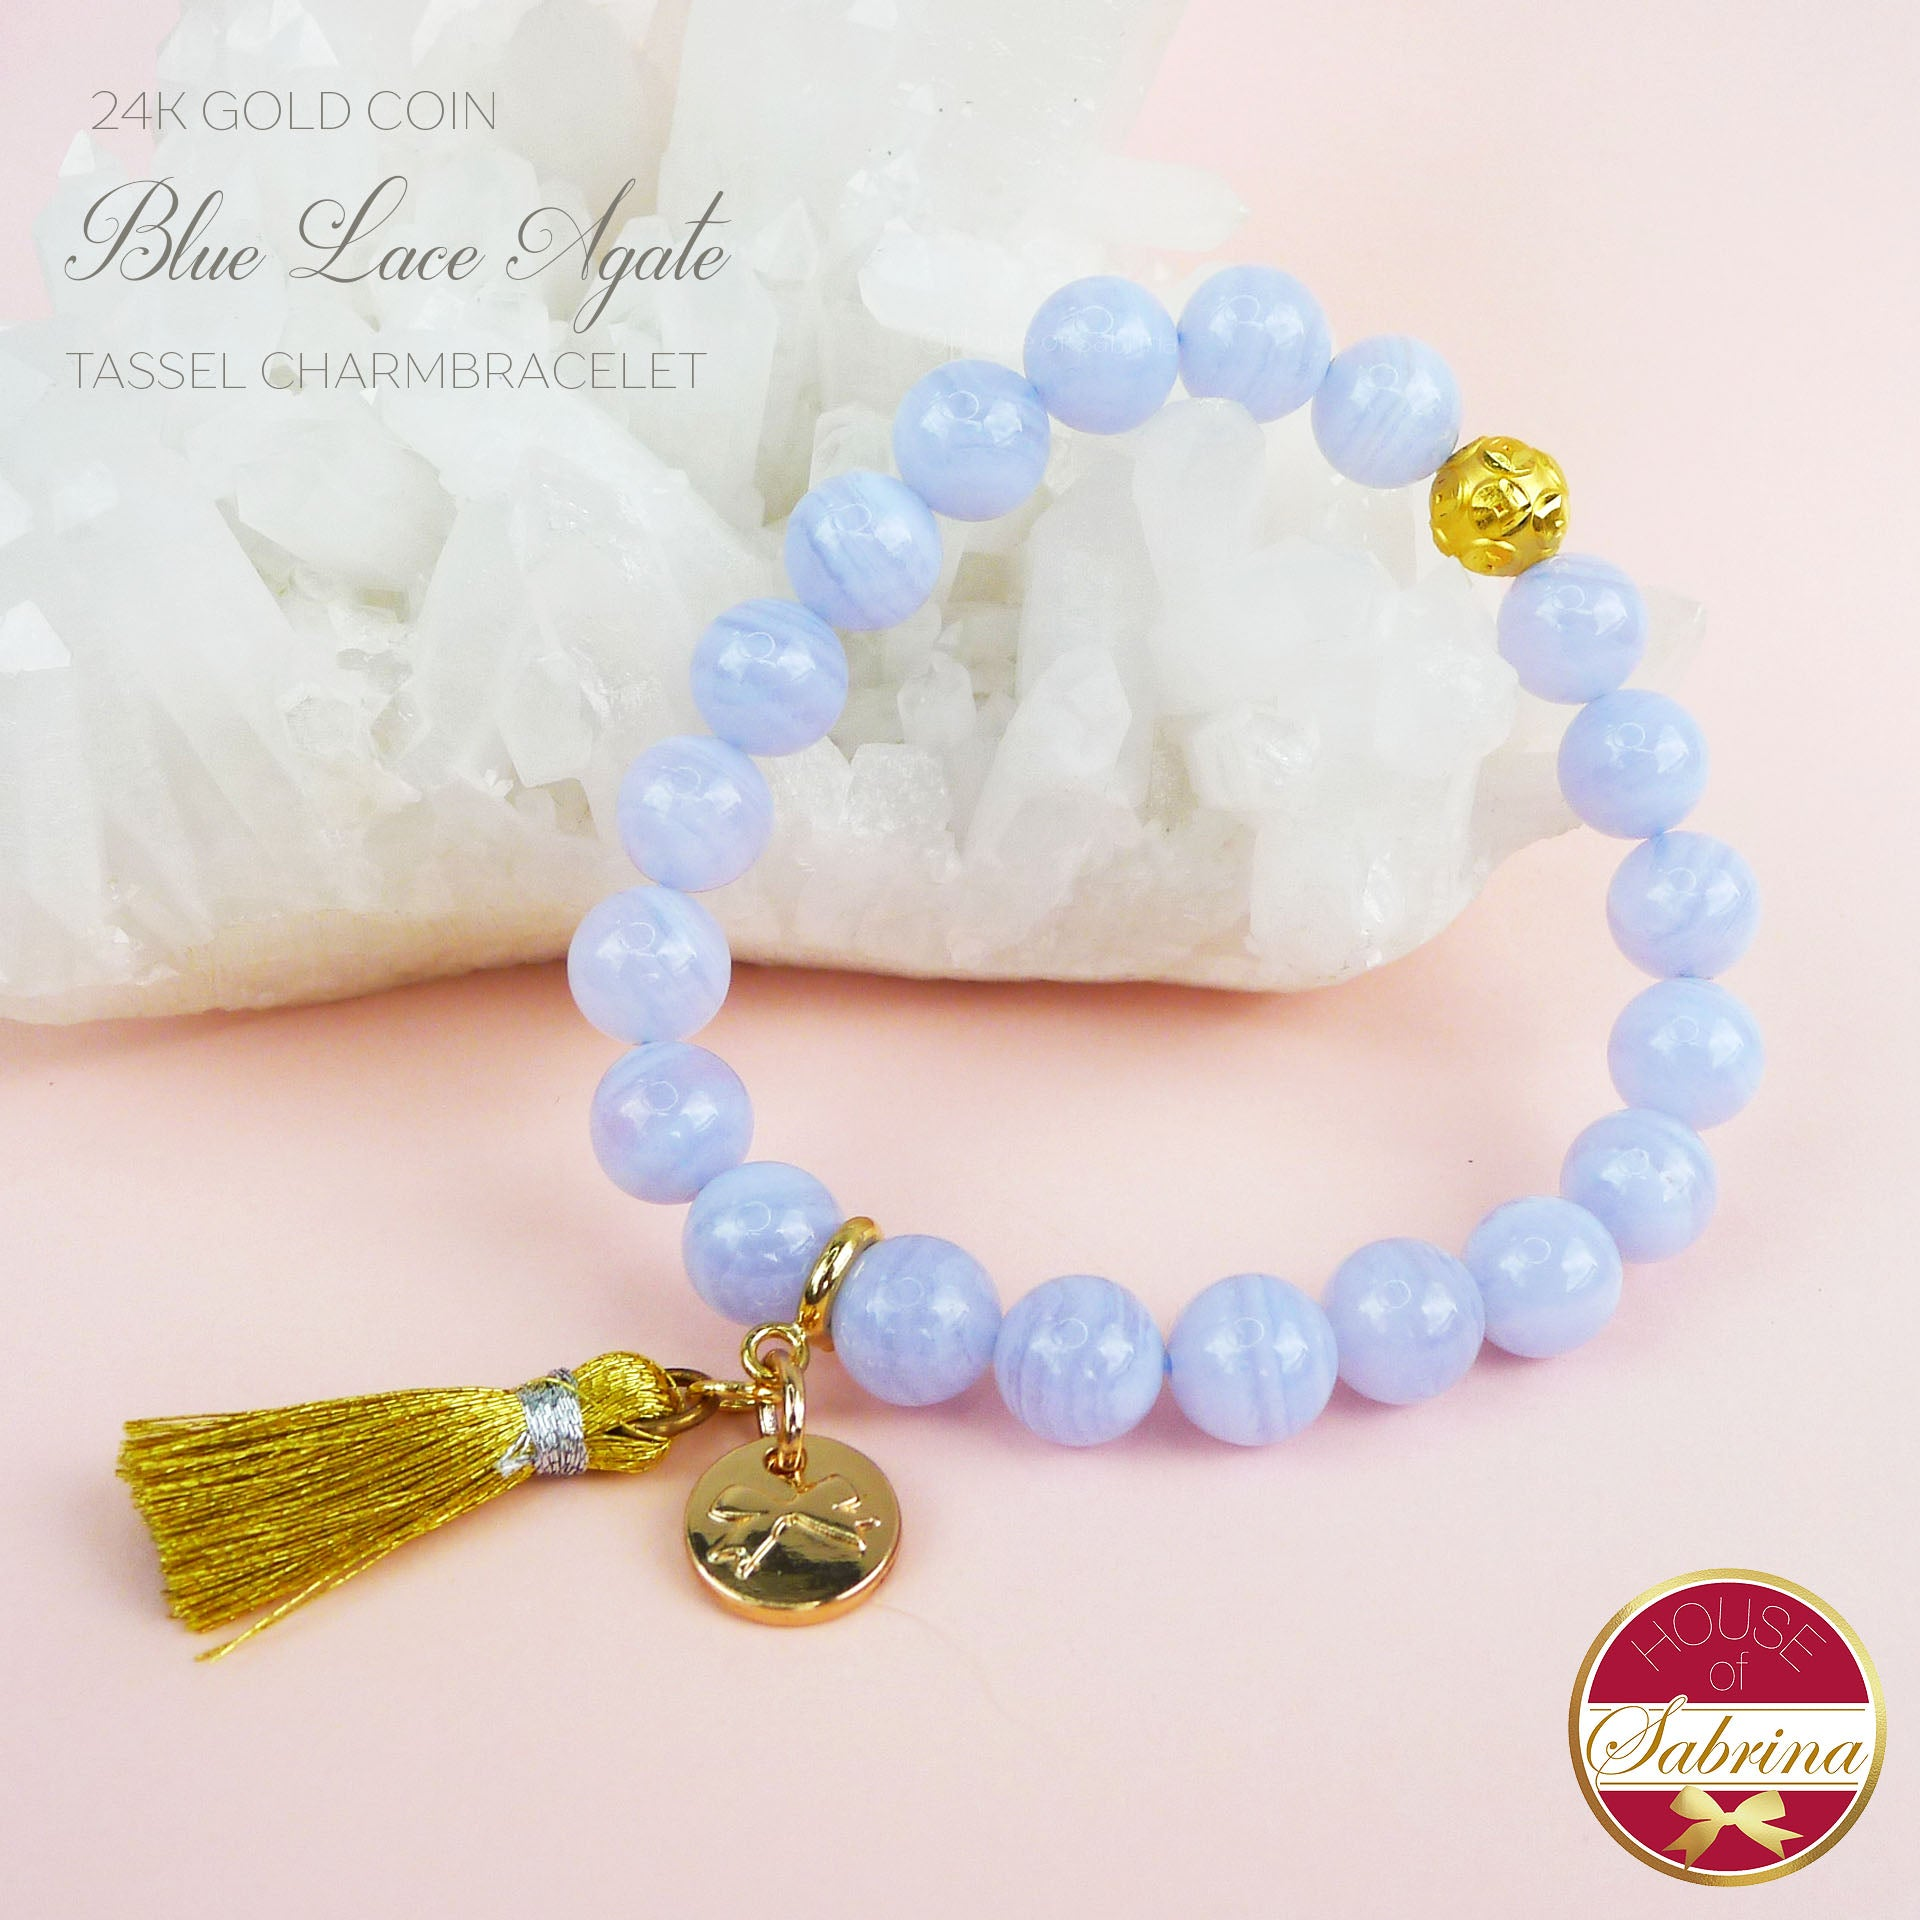 24K GOLD FORTUNE COIN + HIGH GRADE BLUE LACE AGATE TASSEL BRACELET